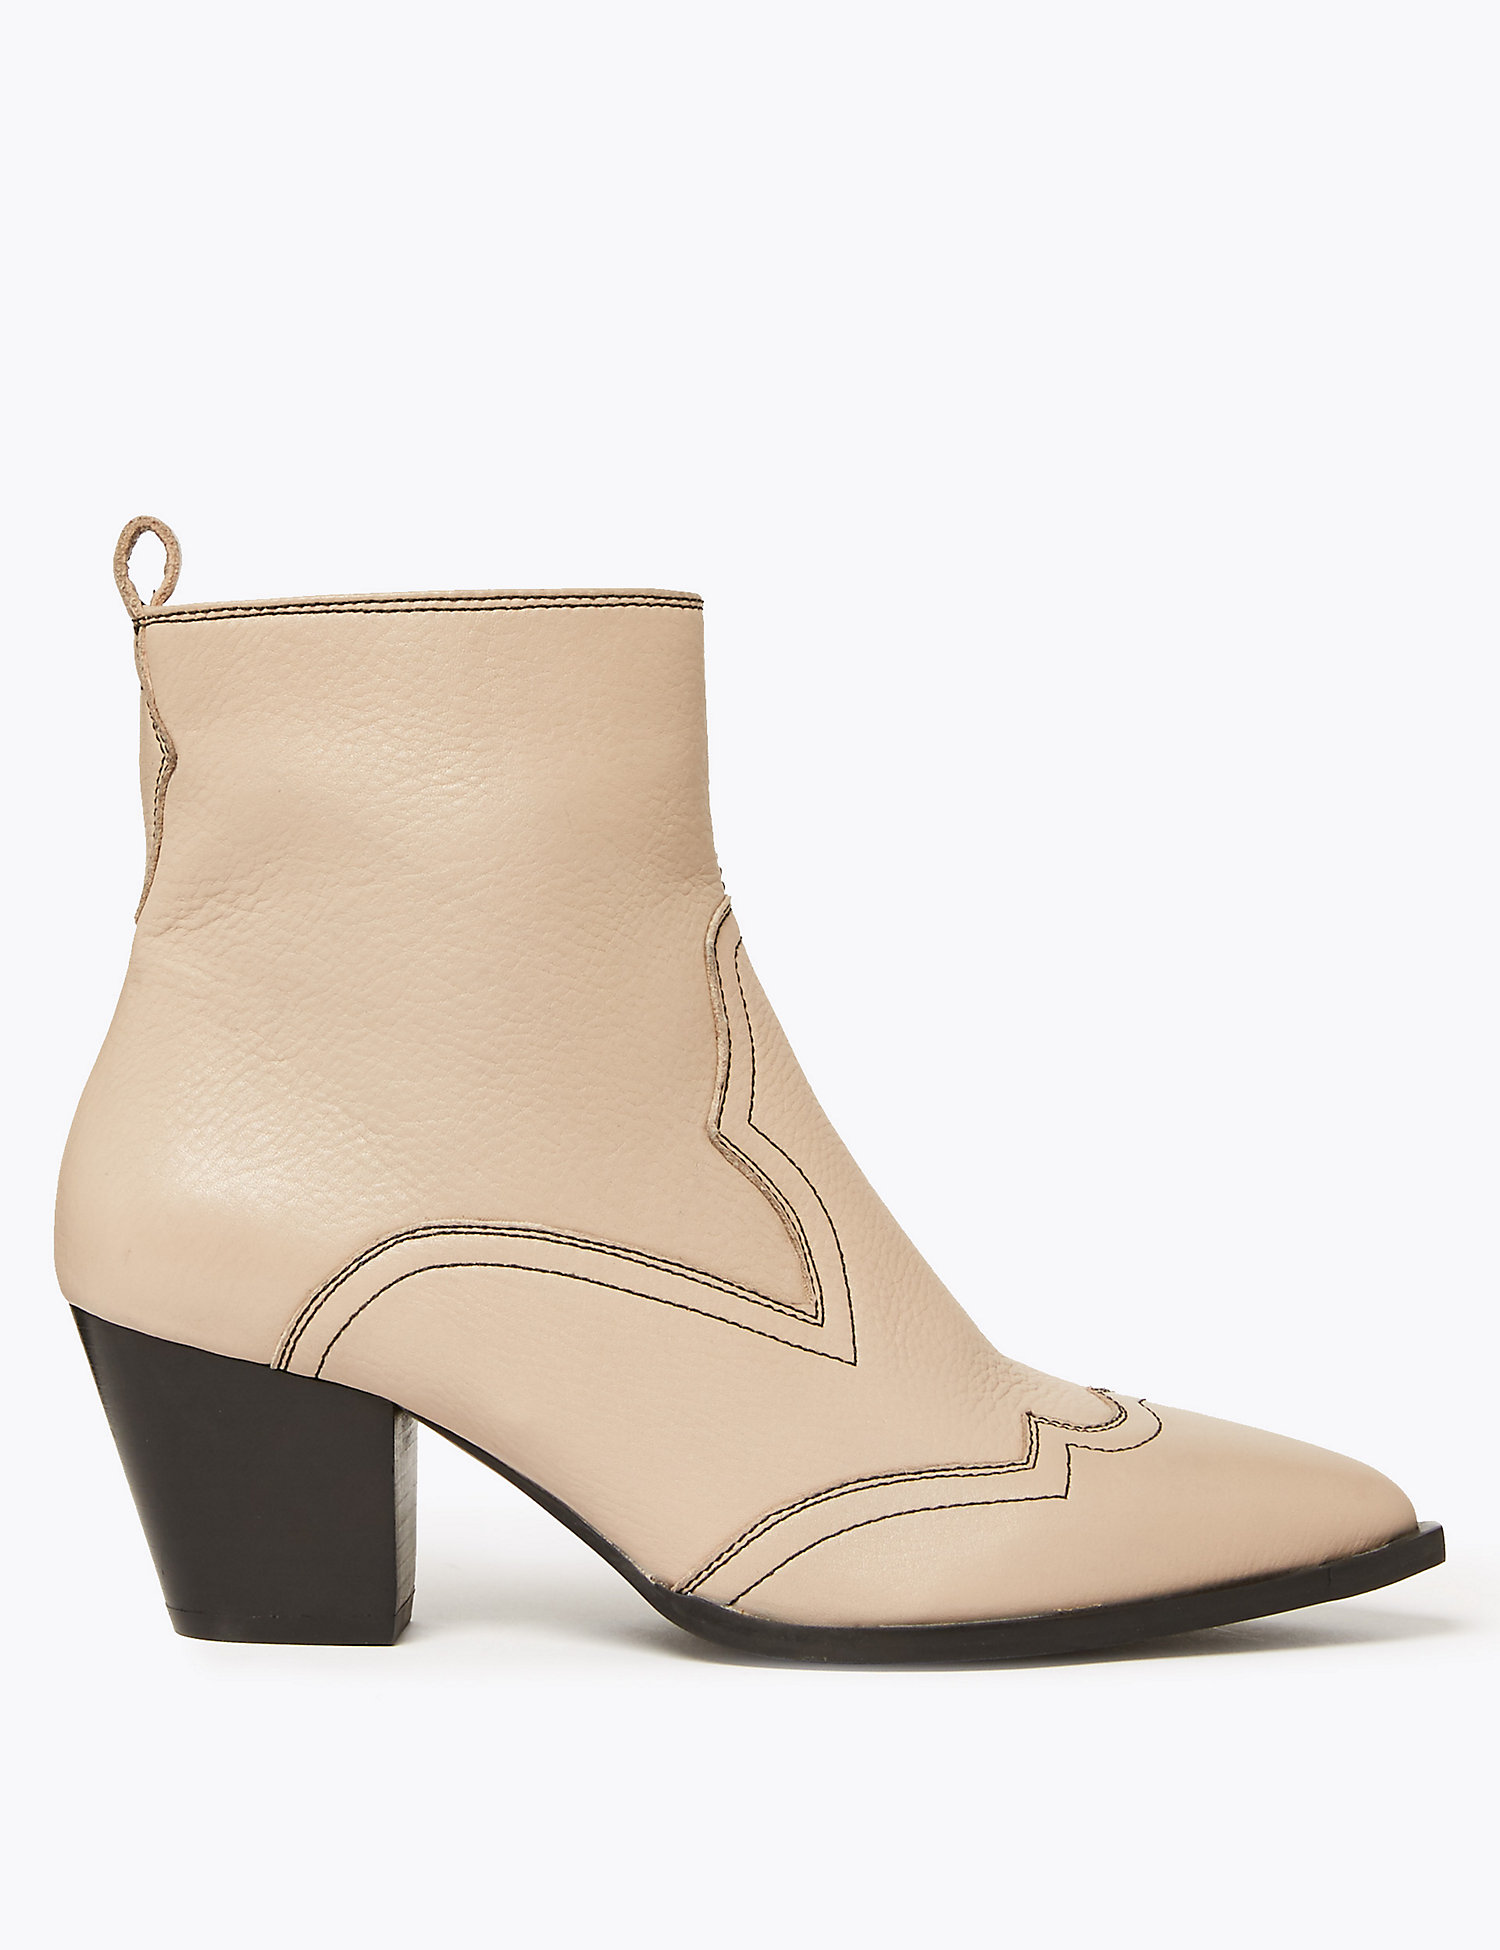 M&S Pink Boots